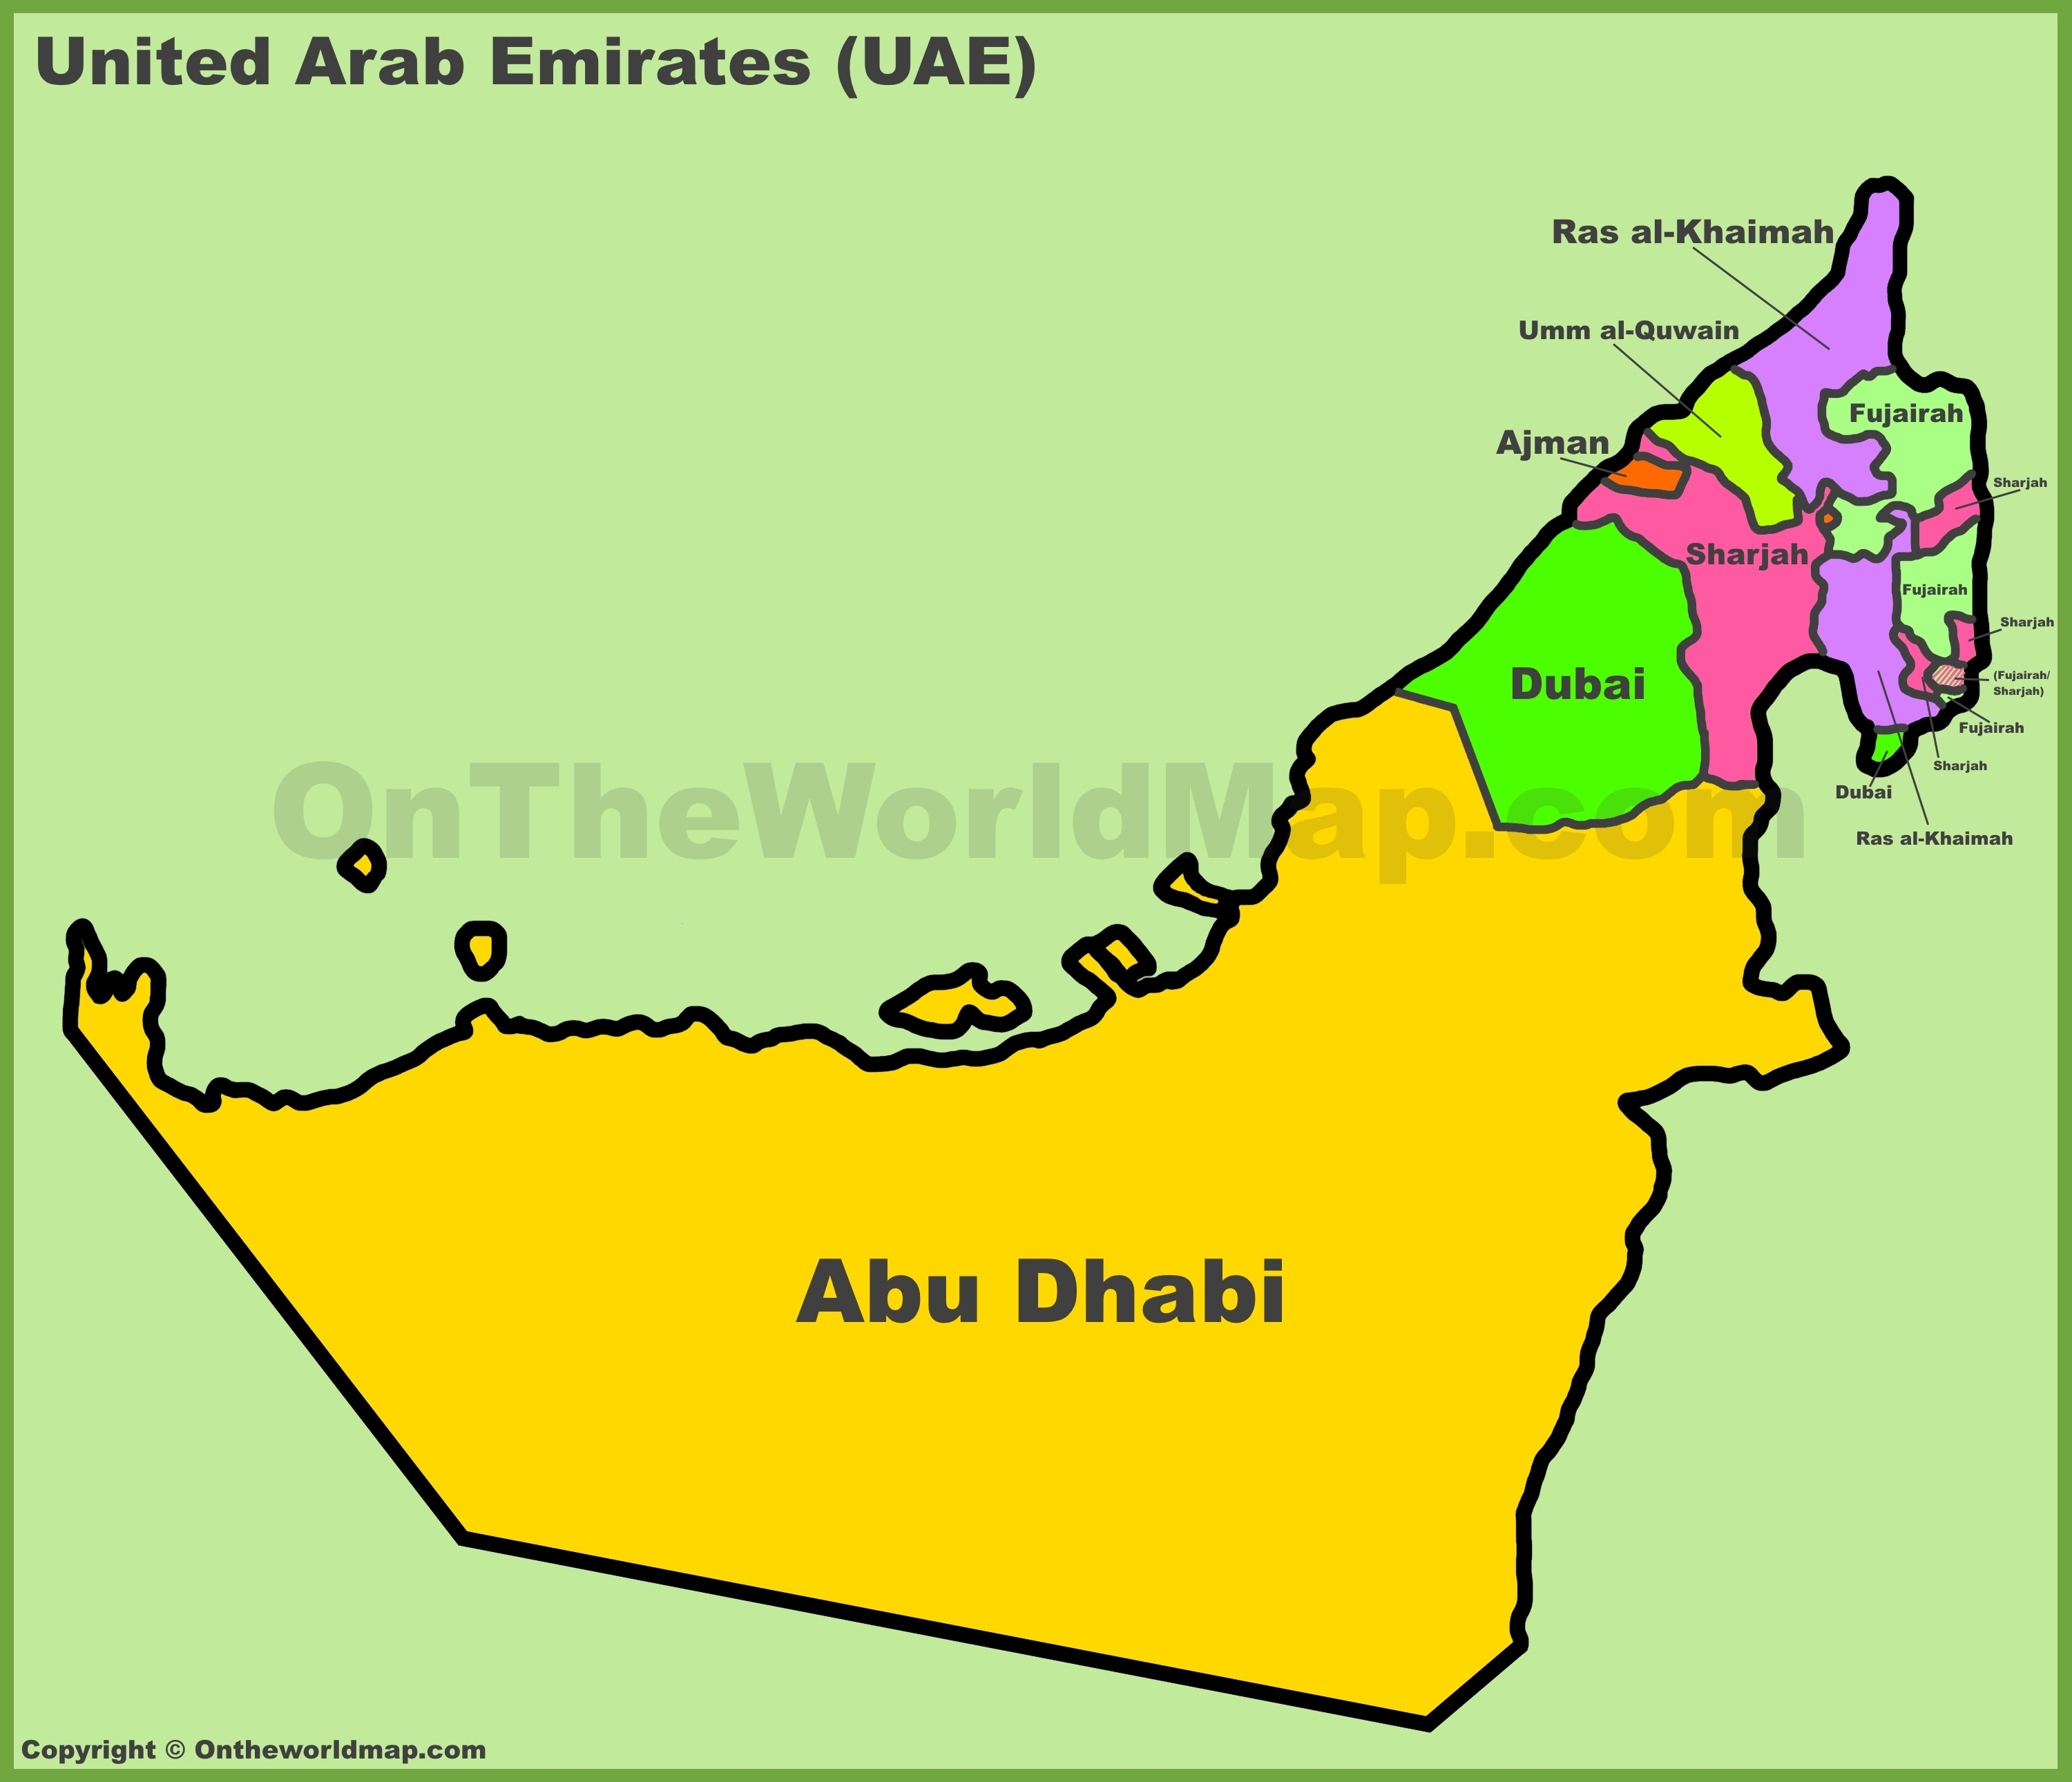 UAE Emirates Map (Administrative divisions map of UAE) on map of algeria, middle east, ras al-khaimah, burj al-arab, united states of america, map of bhutan, map of sudan, map of malaysia, arabian peninsula, persian gulf, map of iran, map of isle of man, map of ethiopia, map of dubai and surrounding countries, map of netherlands, abu dhabi, burj khalifa, map of montenegro, saudi arabia, map of singapore, map of pakistan, map of hungary, map of oman, map of venezuela, map of bosnia, map of bahrain, map of israel, map of armenia, map of denmark,